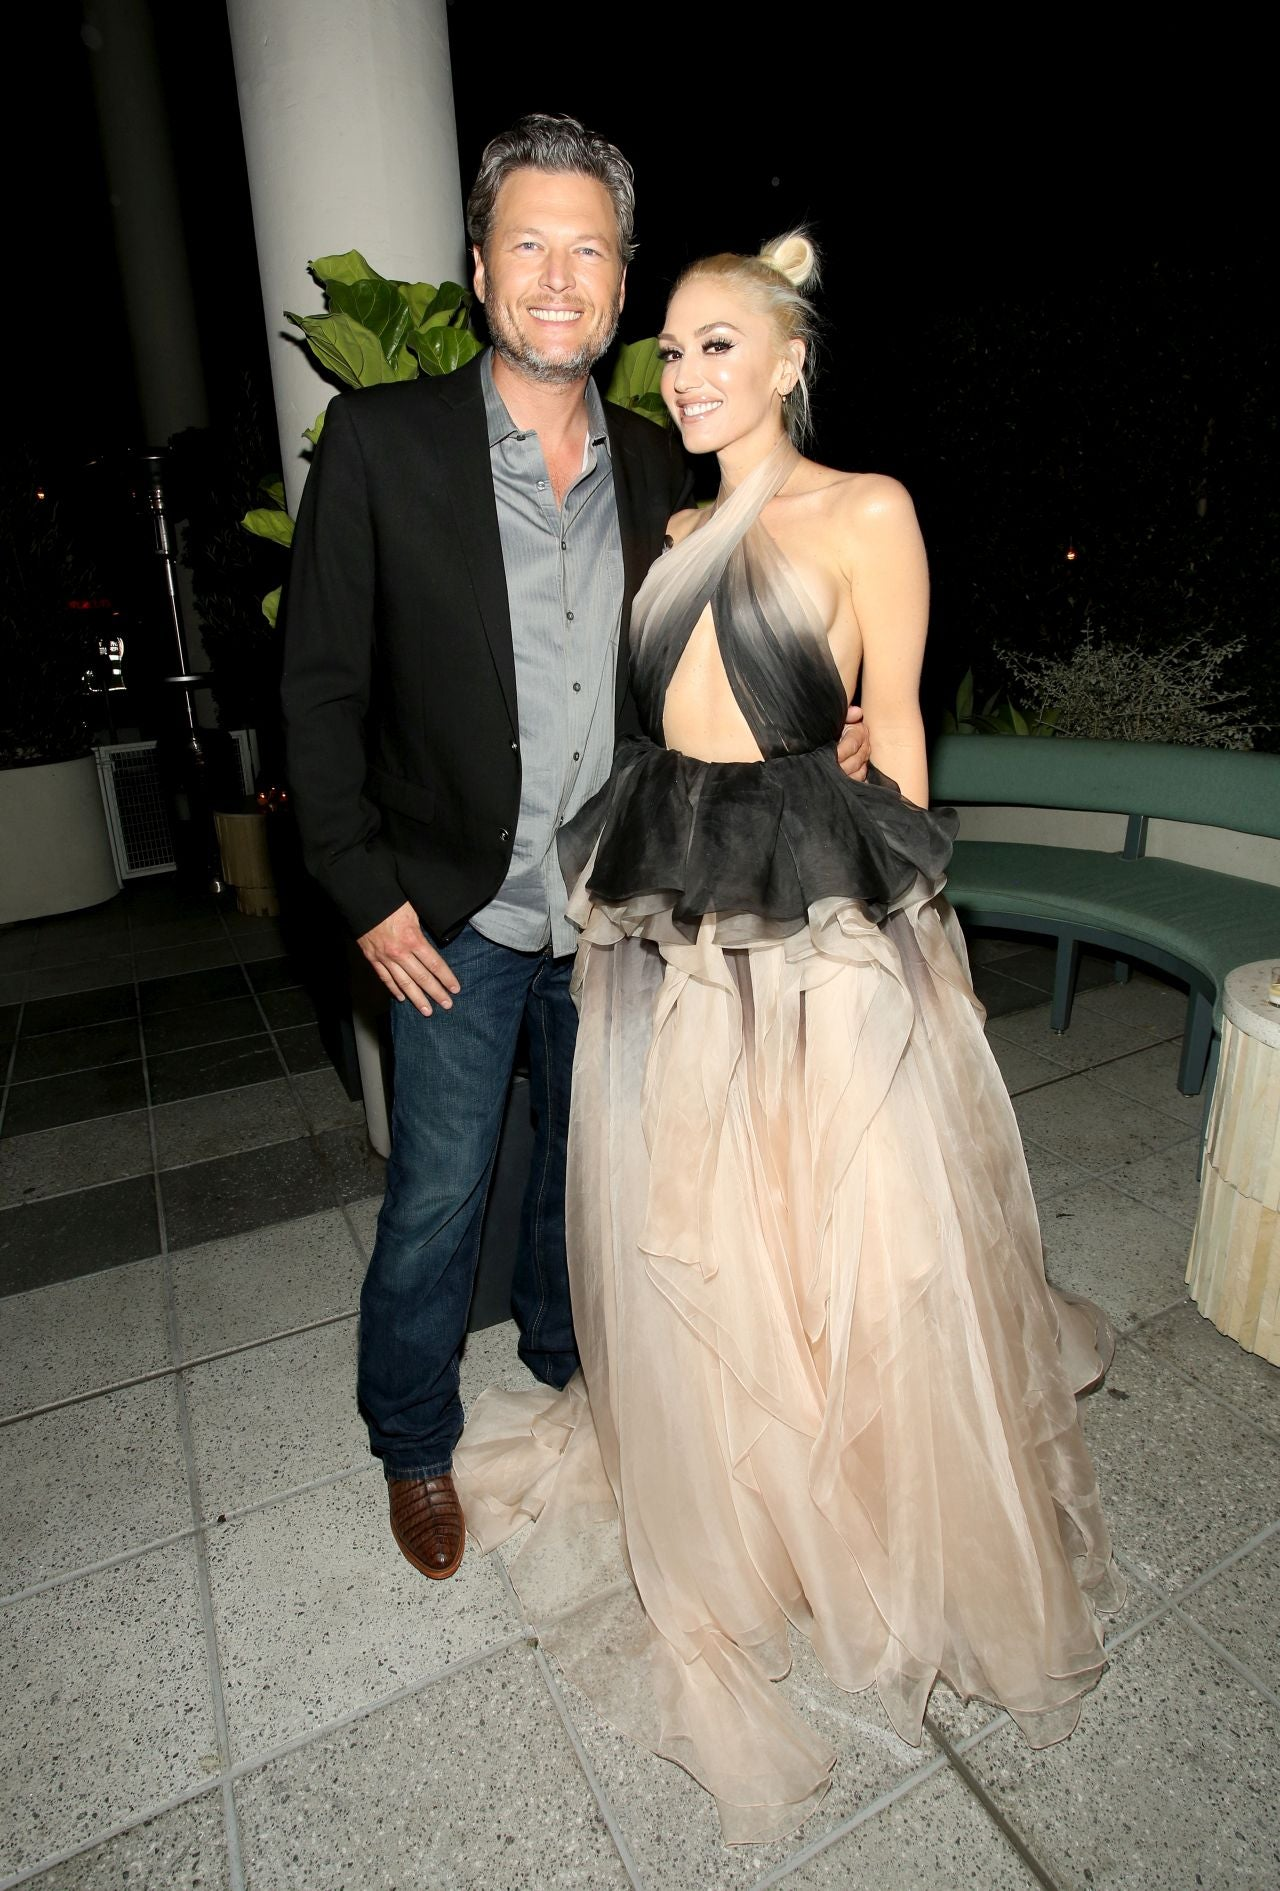 Gwen Stefani and her boyfriend Blake Shelton are focused  to expand their family and have baby together